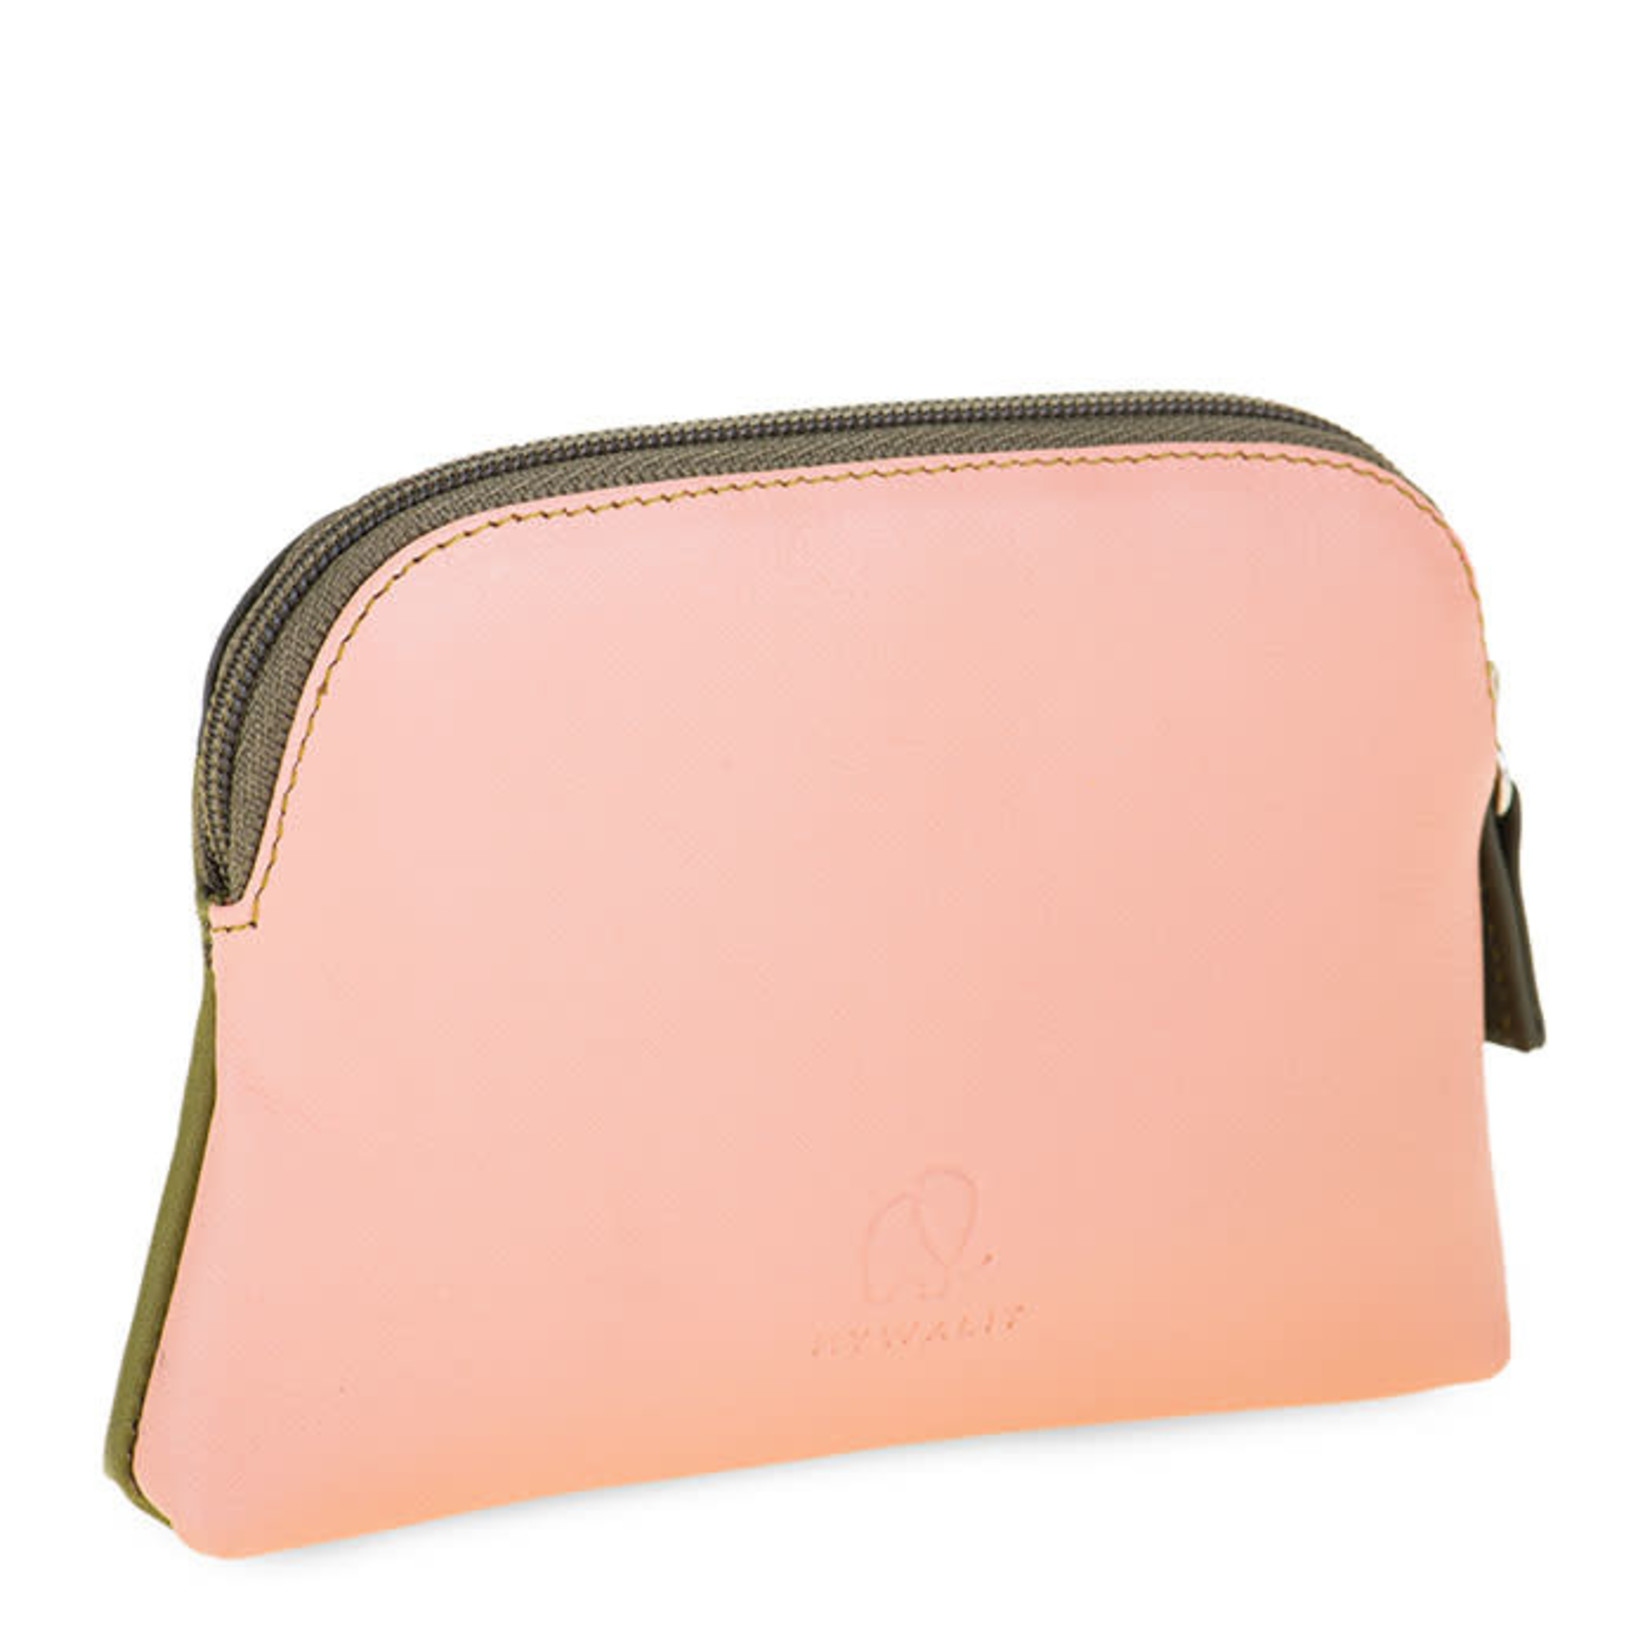 MYWALIT LARGE COIN PURSE